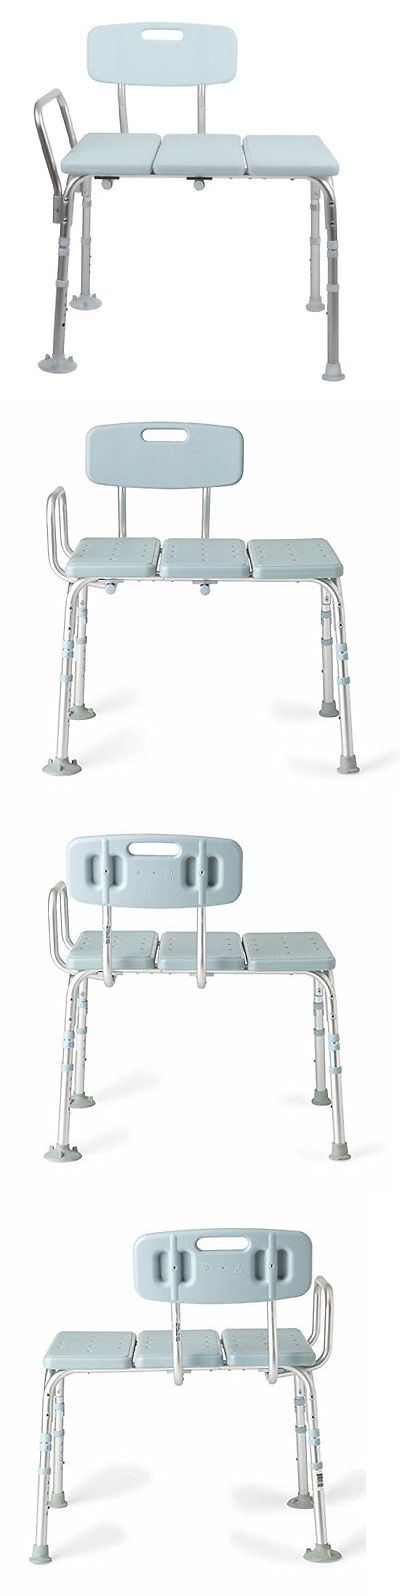 Other Accessibility Fixtures: Medline Transfer Bench With Back, Knockdown, Microban, New, Free Shipping -> BUY IT NOW ONLY: $86.23 on eBay!